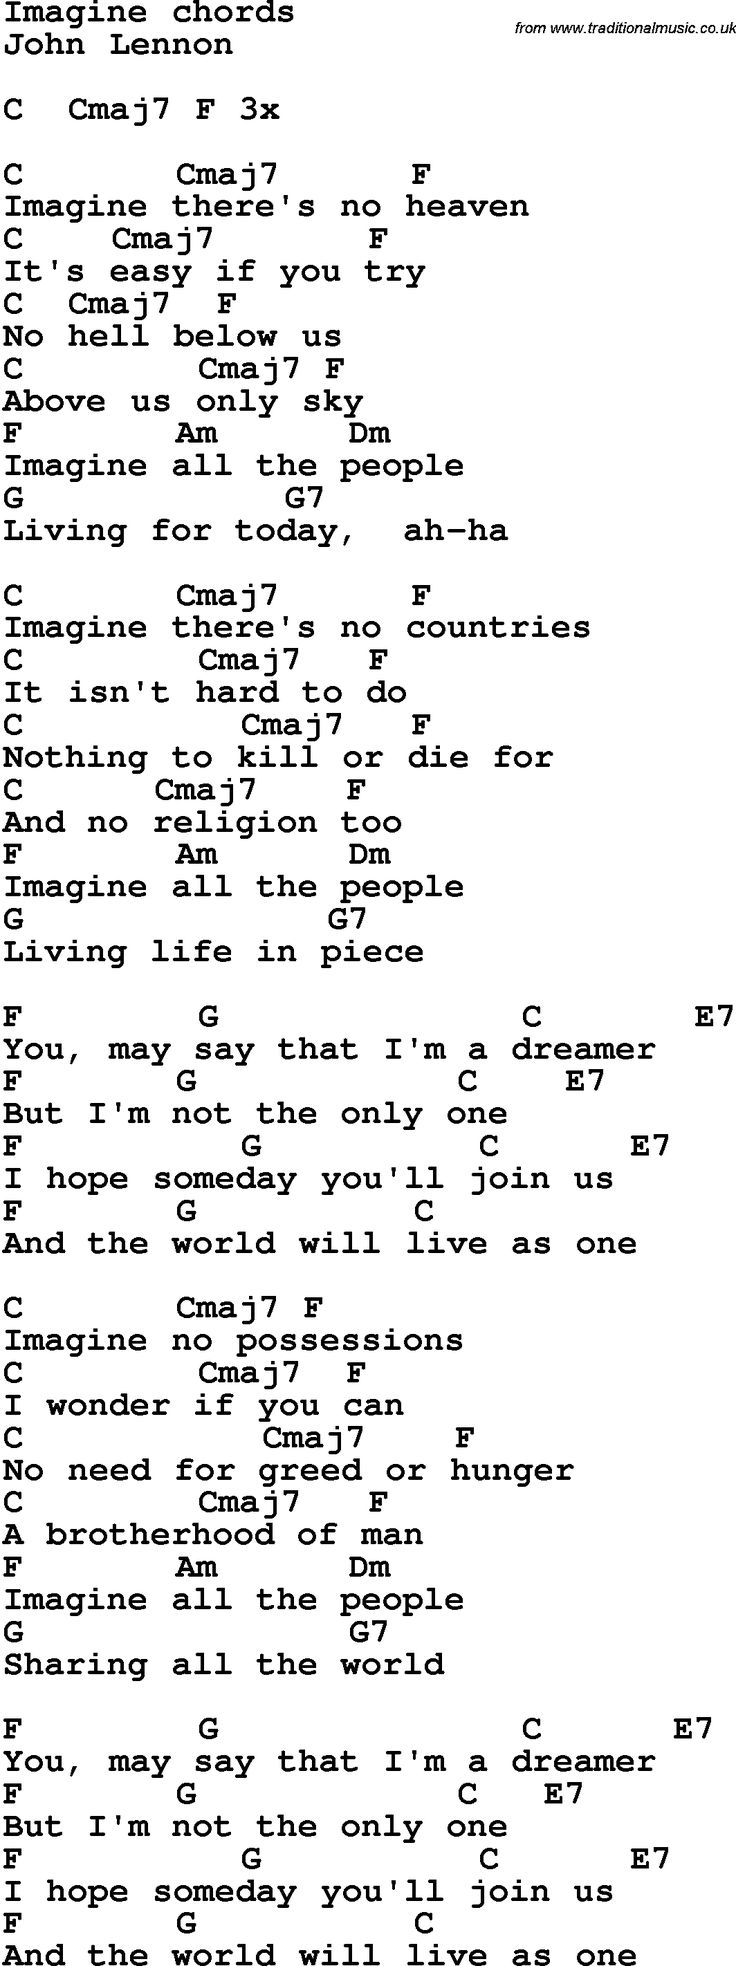 Love john lennon acoustic chords best ukulele images on songs love john lennon acoustic chords song lyrics with guitar chords for imagine john lennon hexwebz Images